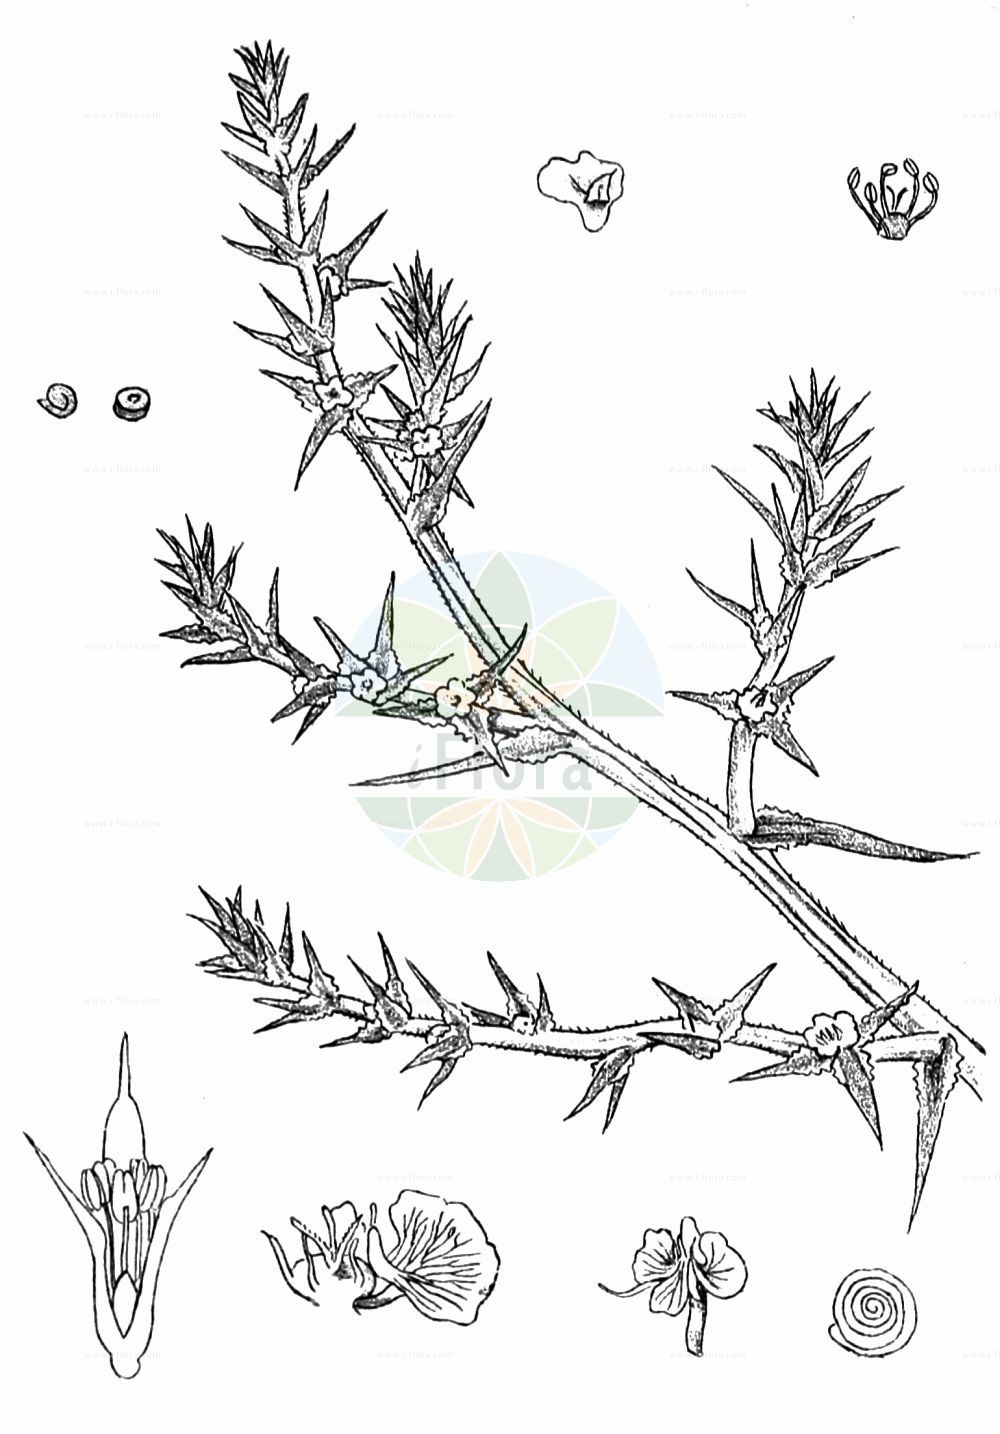 Historische Abbildung von Salsola kali (Gewoehnliches Kali-Salzkraut - Prickly Saltwort). Das Bild zeigt Blatt, Bluete, Frucht und Same. ---- Historical Drawing of Salsola kali (Gewoehnliches Kali-Salzkraut - Prickly Saltwort).The image is showing leaf, flower, fruit and seed.(Salsola kali,Gewoehnliches Kali-Salzkraut,Prickly Saltwort,Kali australis,Salsola kali,Gewoehnliches Kali-Salzkraut,Kuesten-Salzkraut,Ungarisches Salzkraut,Prickly Saltwort,Prickly Glasswort,Slender Russian Thistle,Prickly Russian Thistle,Roly-poly,Russian Thistle,Spiny Saltwort,Salsola,Salzkraut,Russian Thistle,Amaranthaceae,Fuchsschwanzgewaechse,Pigweed family,Blatt,Bluete,Frucht,Same,leaf,flower,fruit,seed,Kirtikar & Basu (1918))